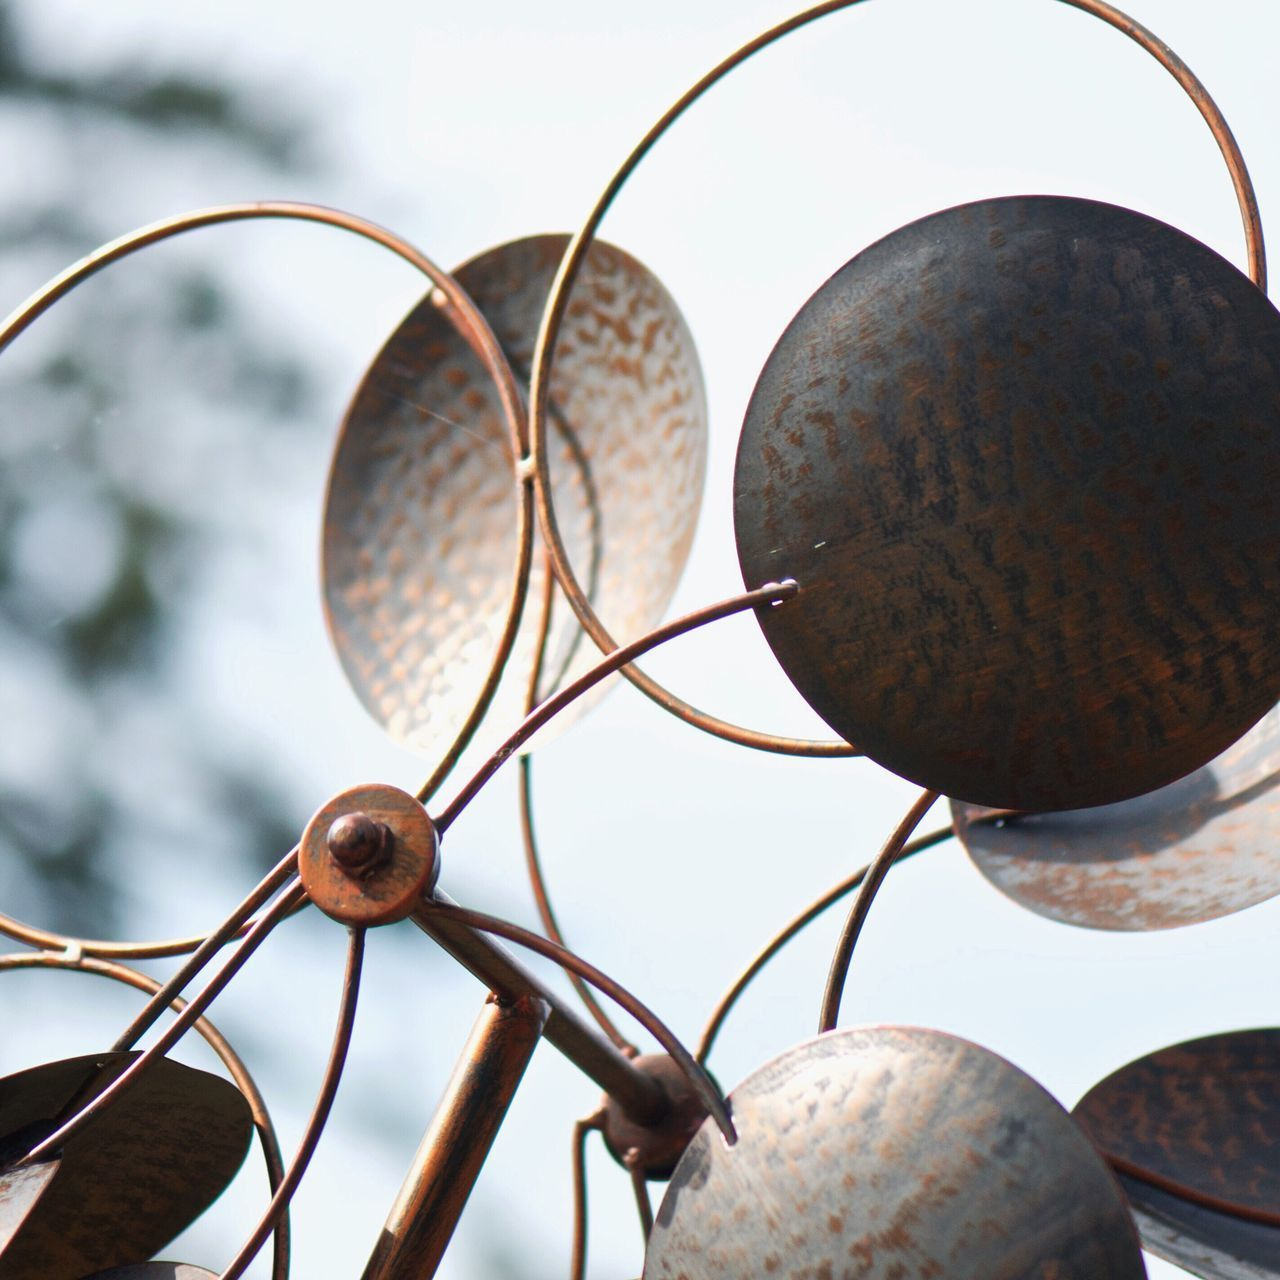 Low Angle View Of Metal Art Against Sky